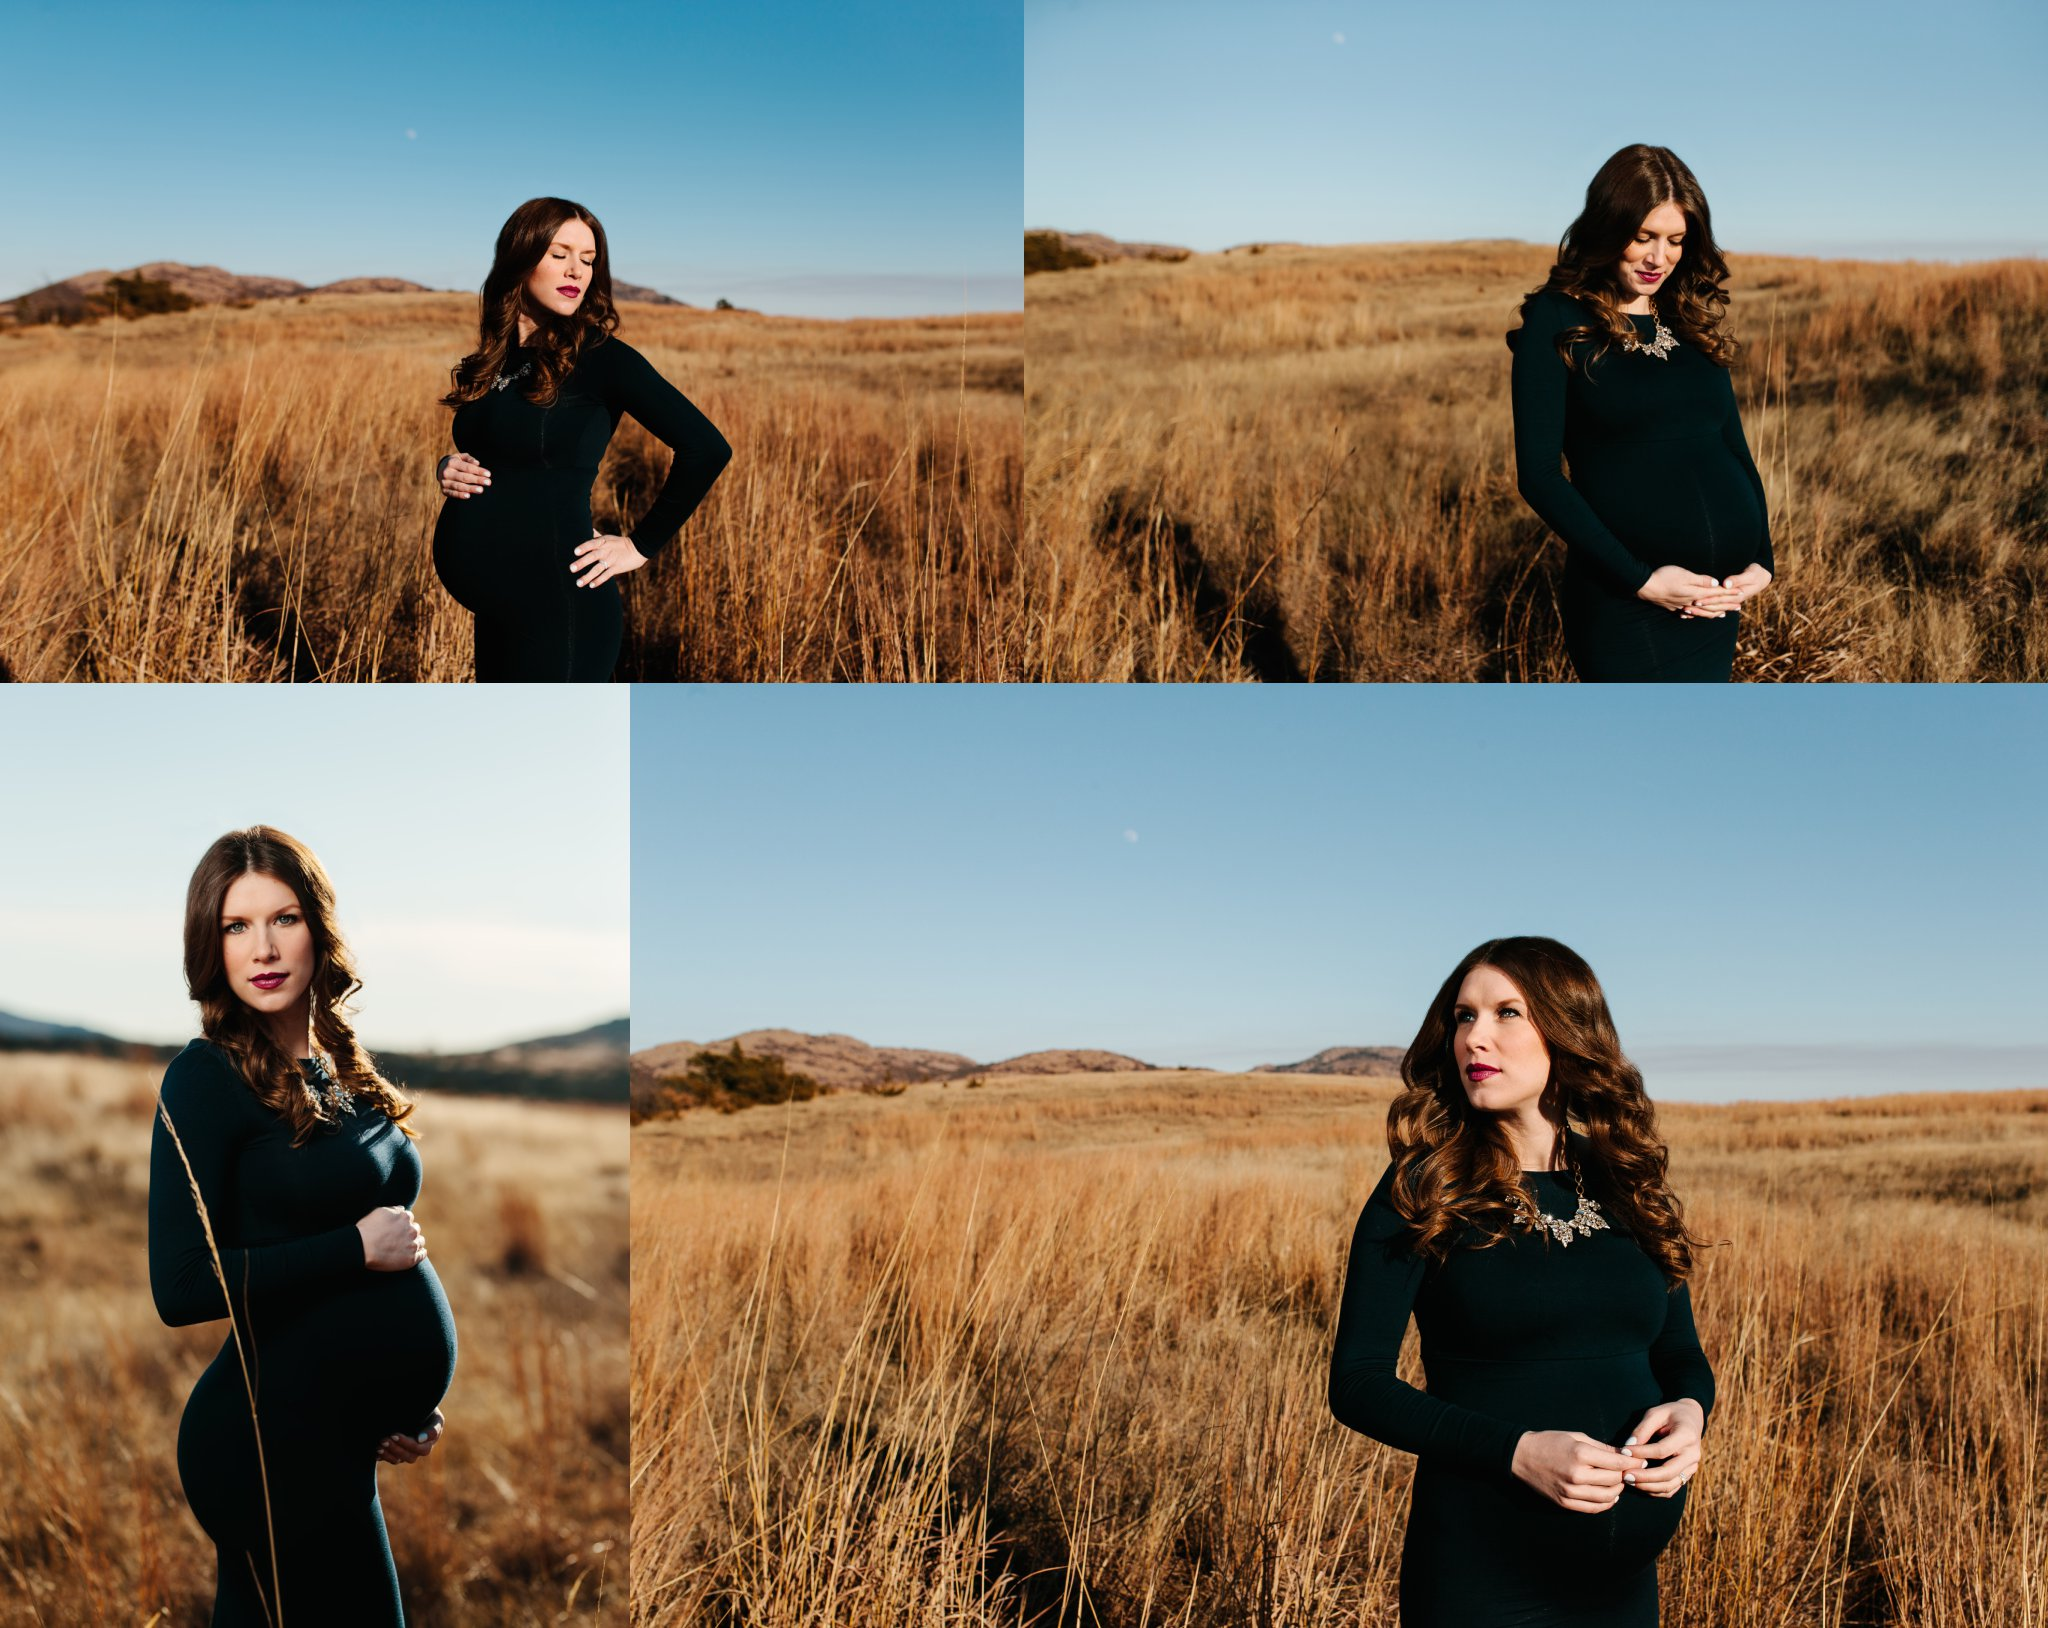 oklahoma-city-maternity-newborn-photographer-travel-wichita-mountains-sunset.jpg